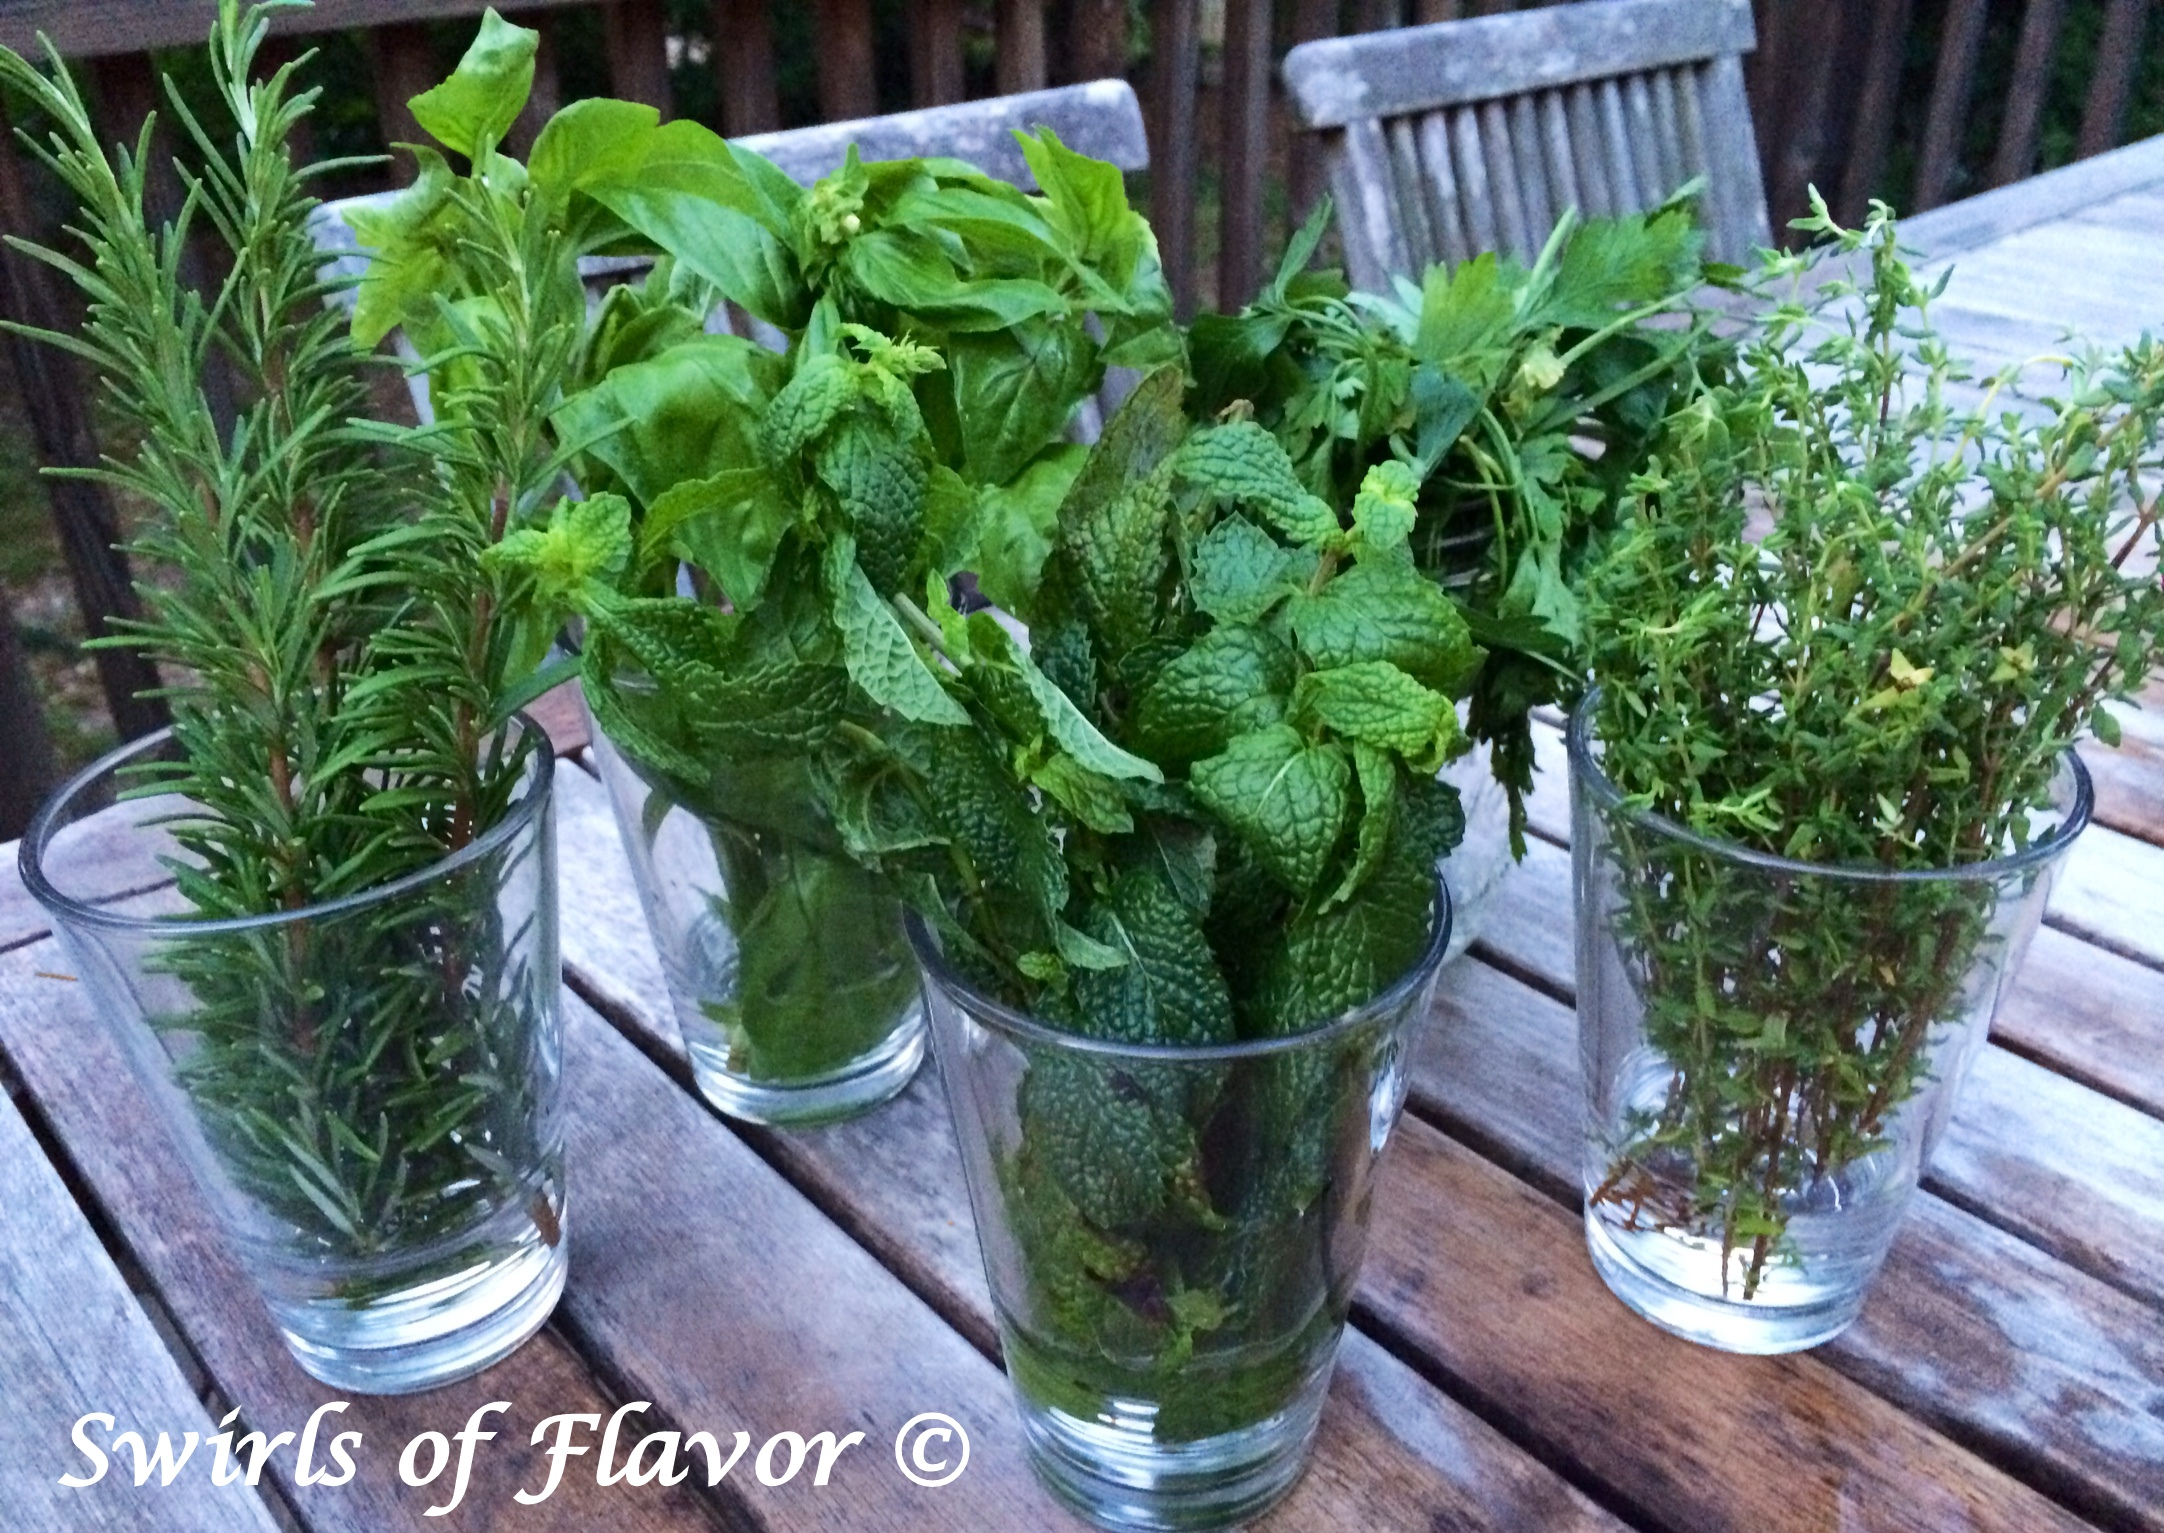 bunches of fresh herbs in glasses on a table